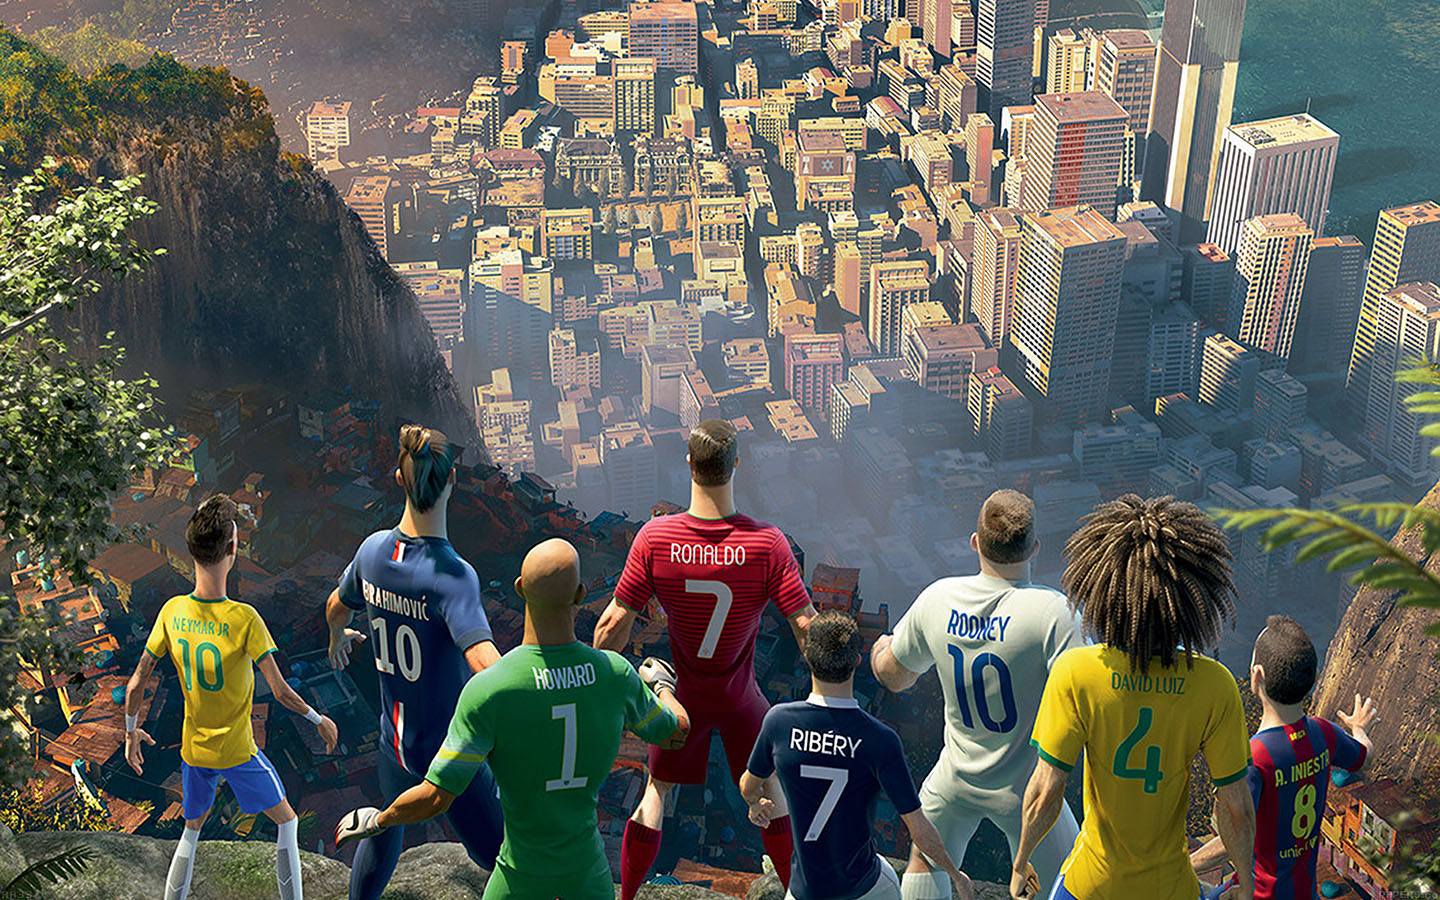 Htc One Wallpaper Hd Aa33 Nike The Last Game Sports Art Papers Co